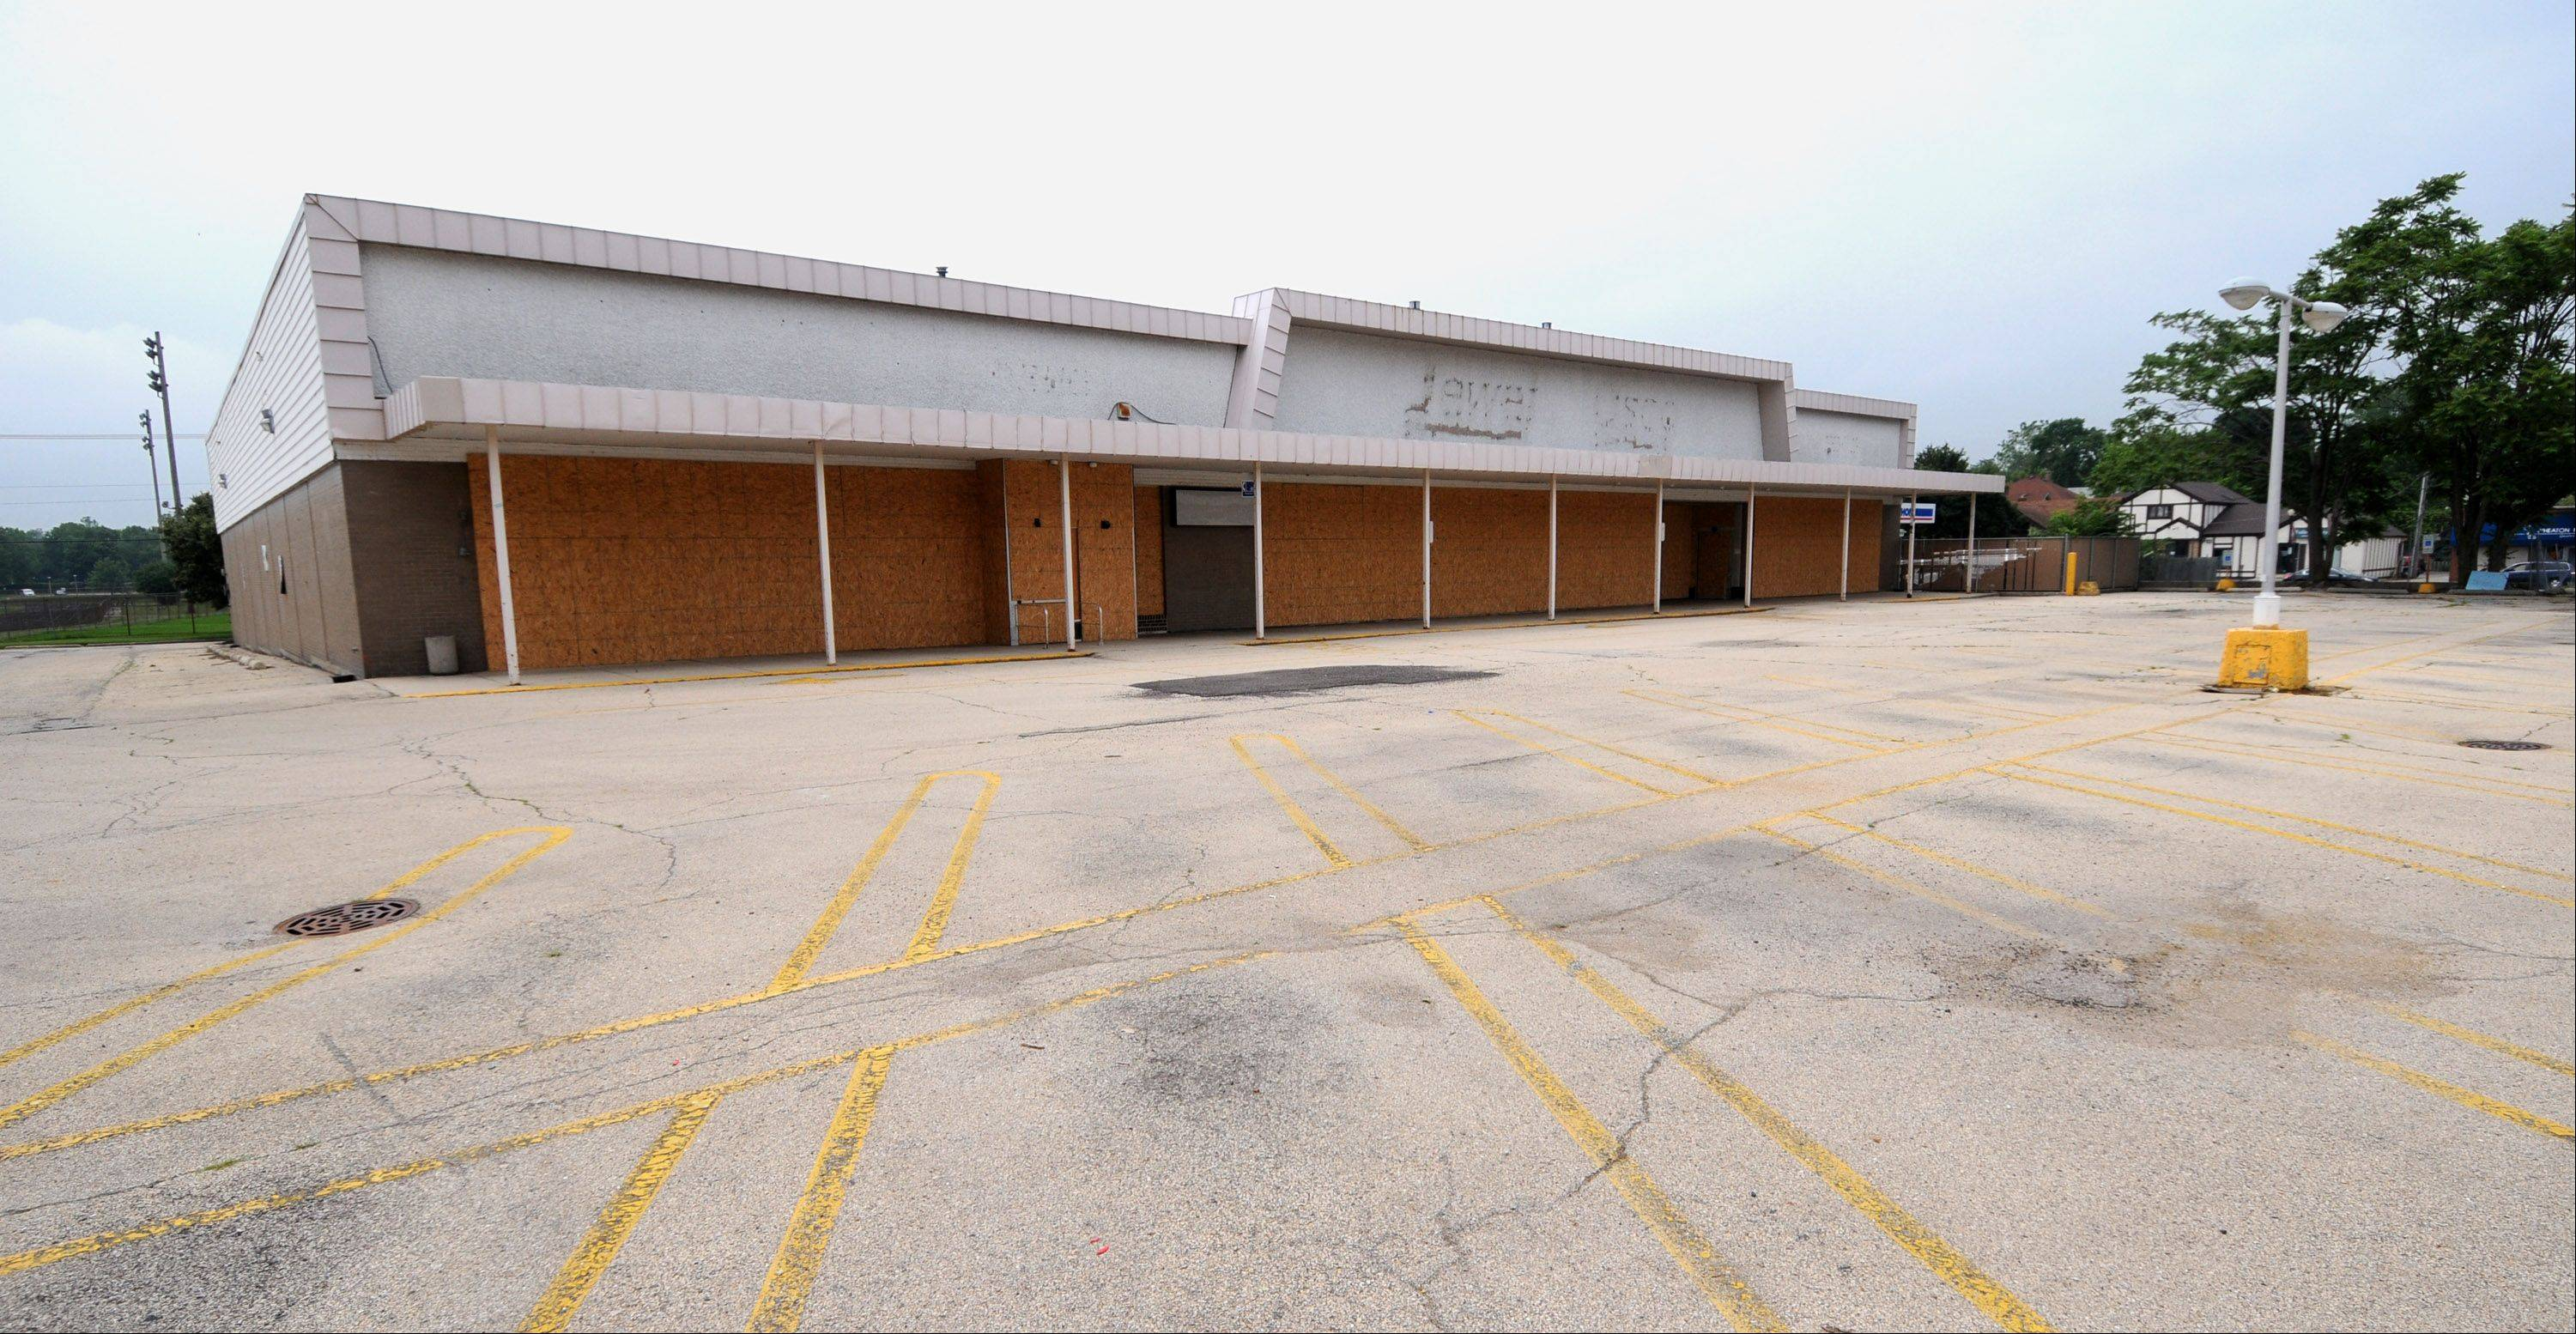 The Wheaton Park District has received a $2.4 million state grant that could go toward buying the old Jewel site, 114 E. Willow Ave. But officials want to first figure out how much renovations would cost the district if it pursued the 1.45-acre property.